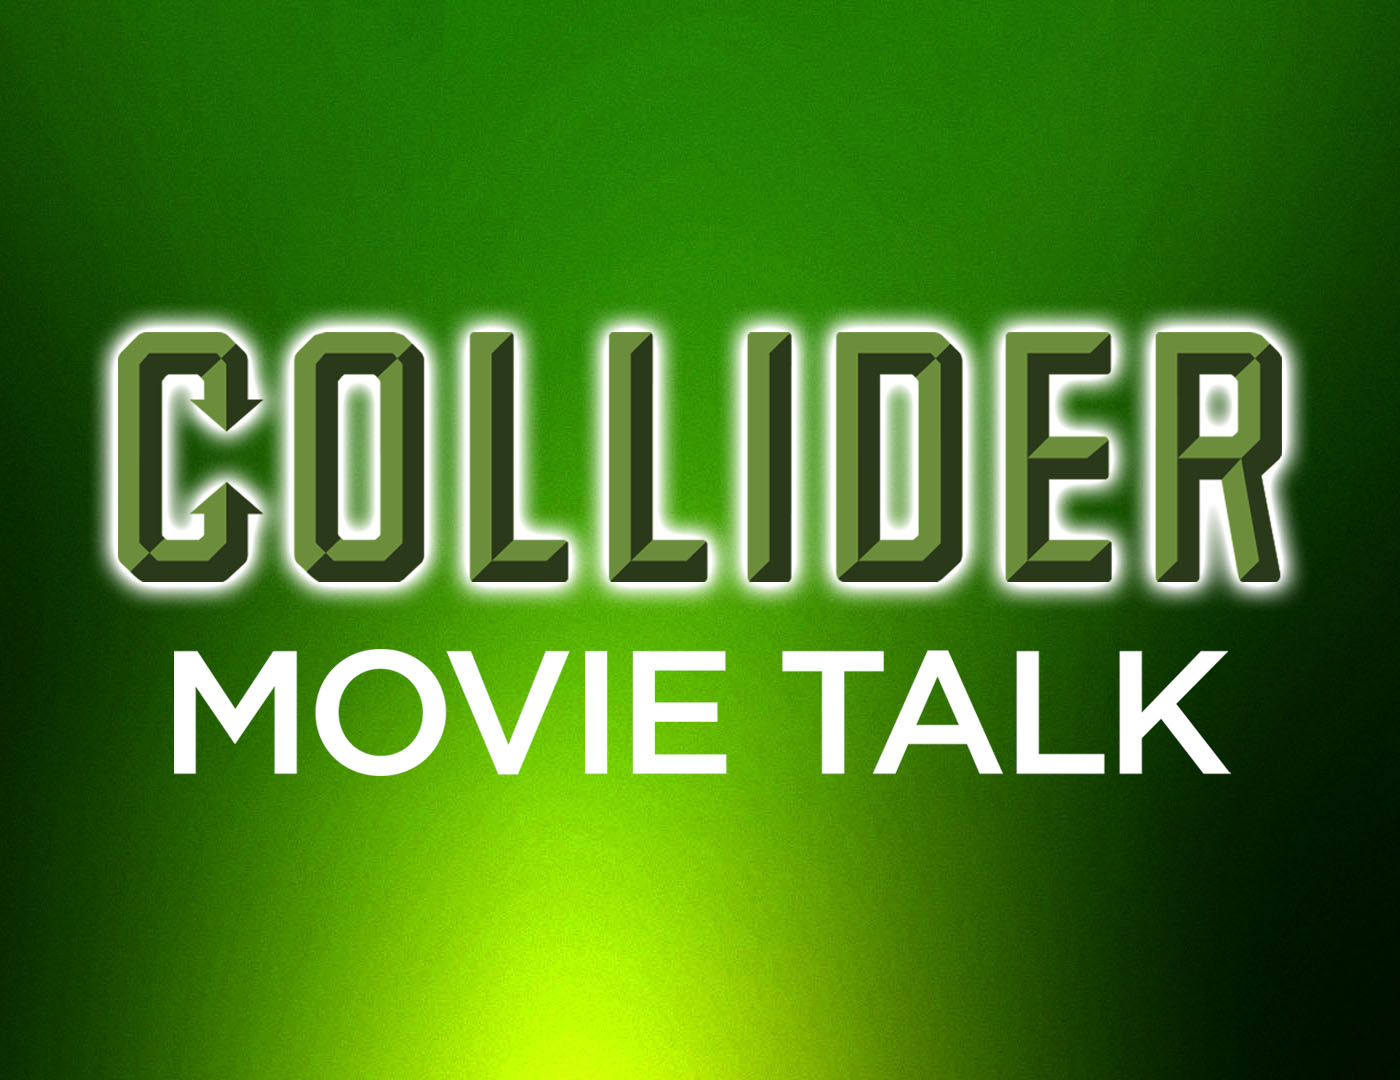 Collider Movie Talk - Batman V Superman Runtime Revealed!